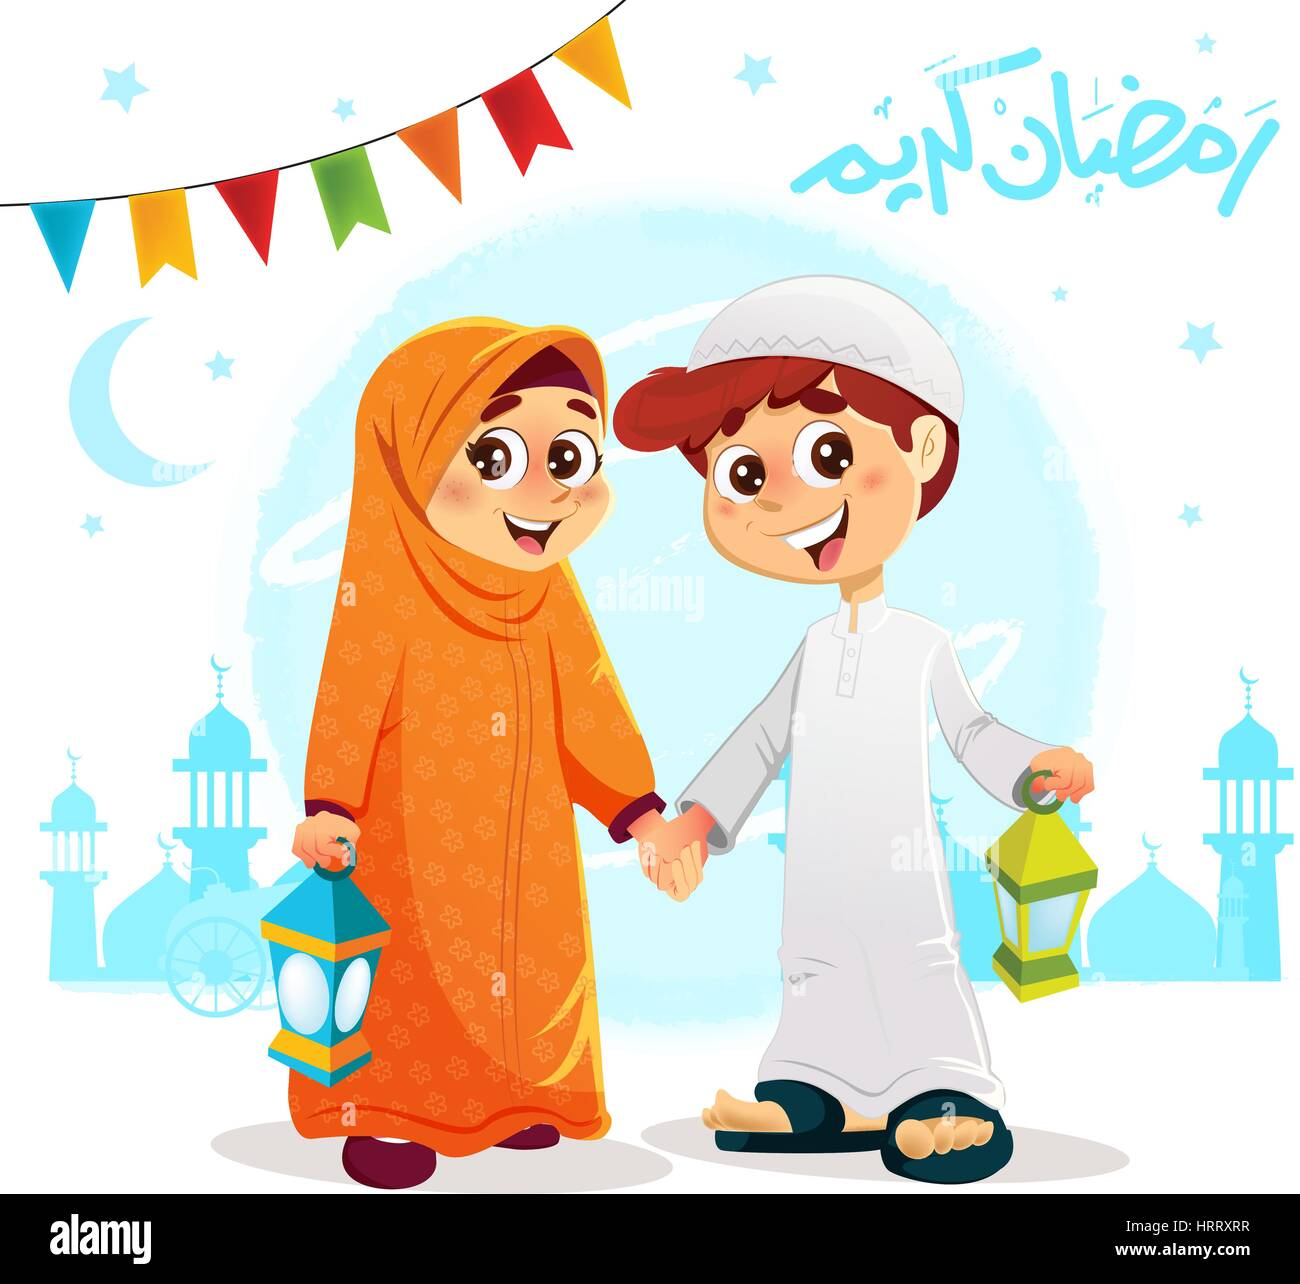 Vector illustration of arabic muslim boy and girl celebrating stock vector illustration of arabic muslim boy and girl celebrating ramadan with happy ramadan text written in arabic m4hsunfo